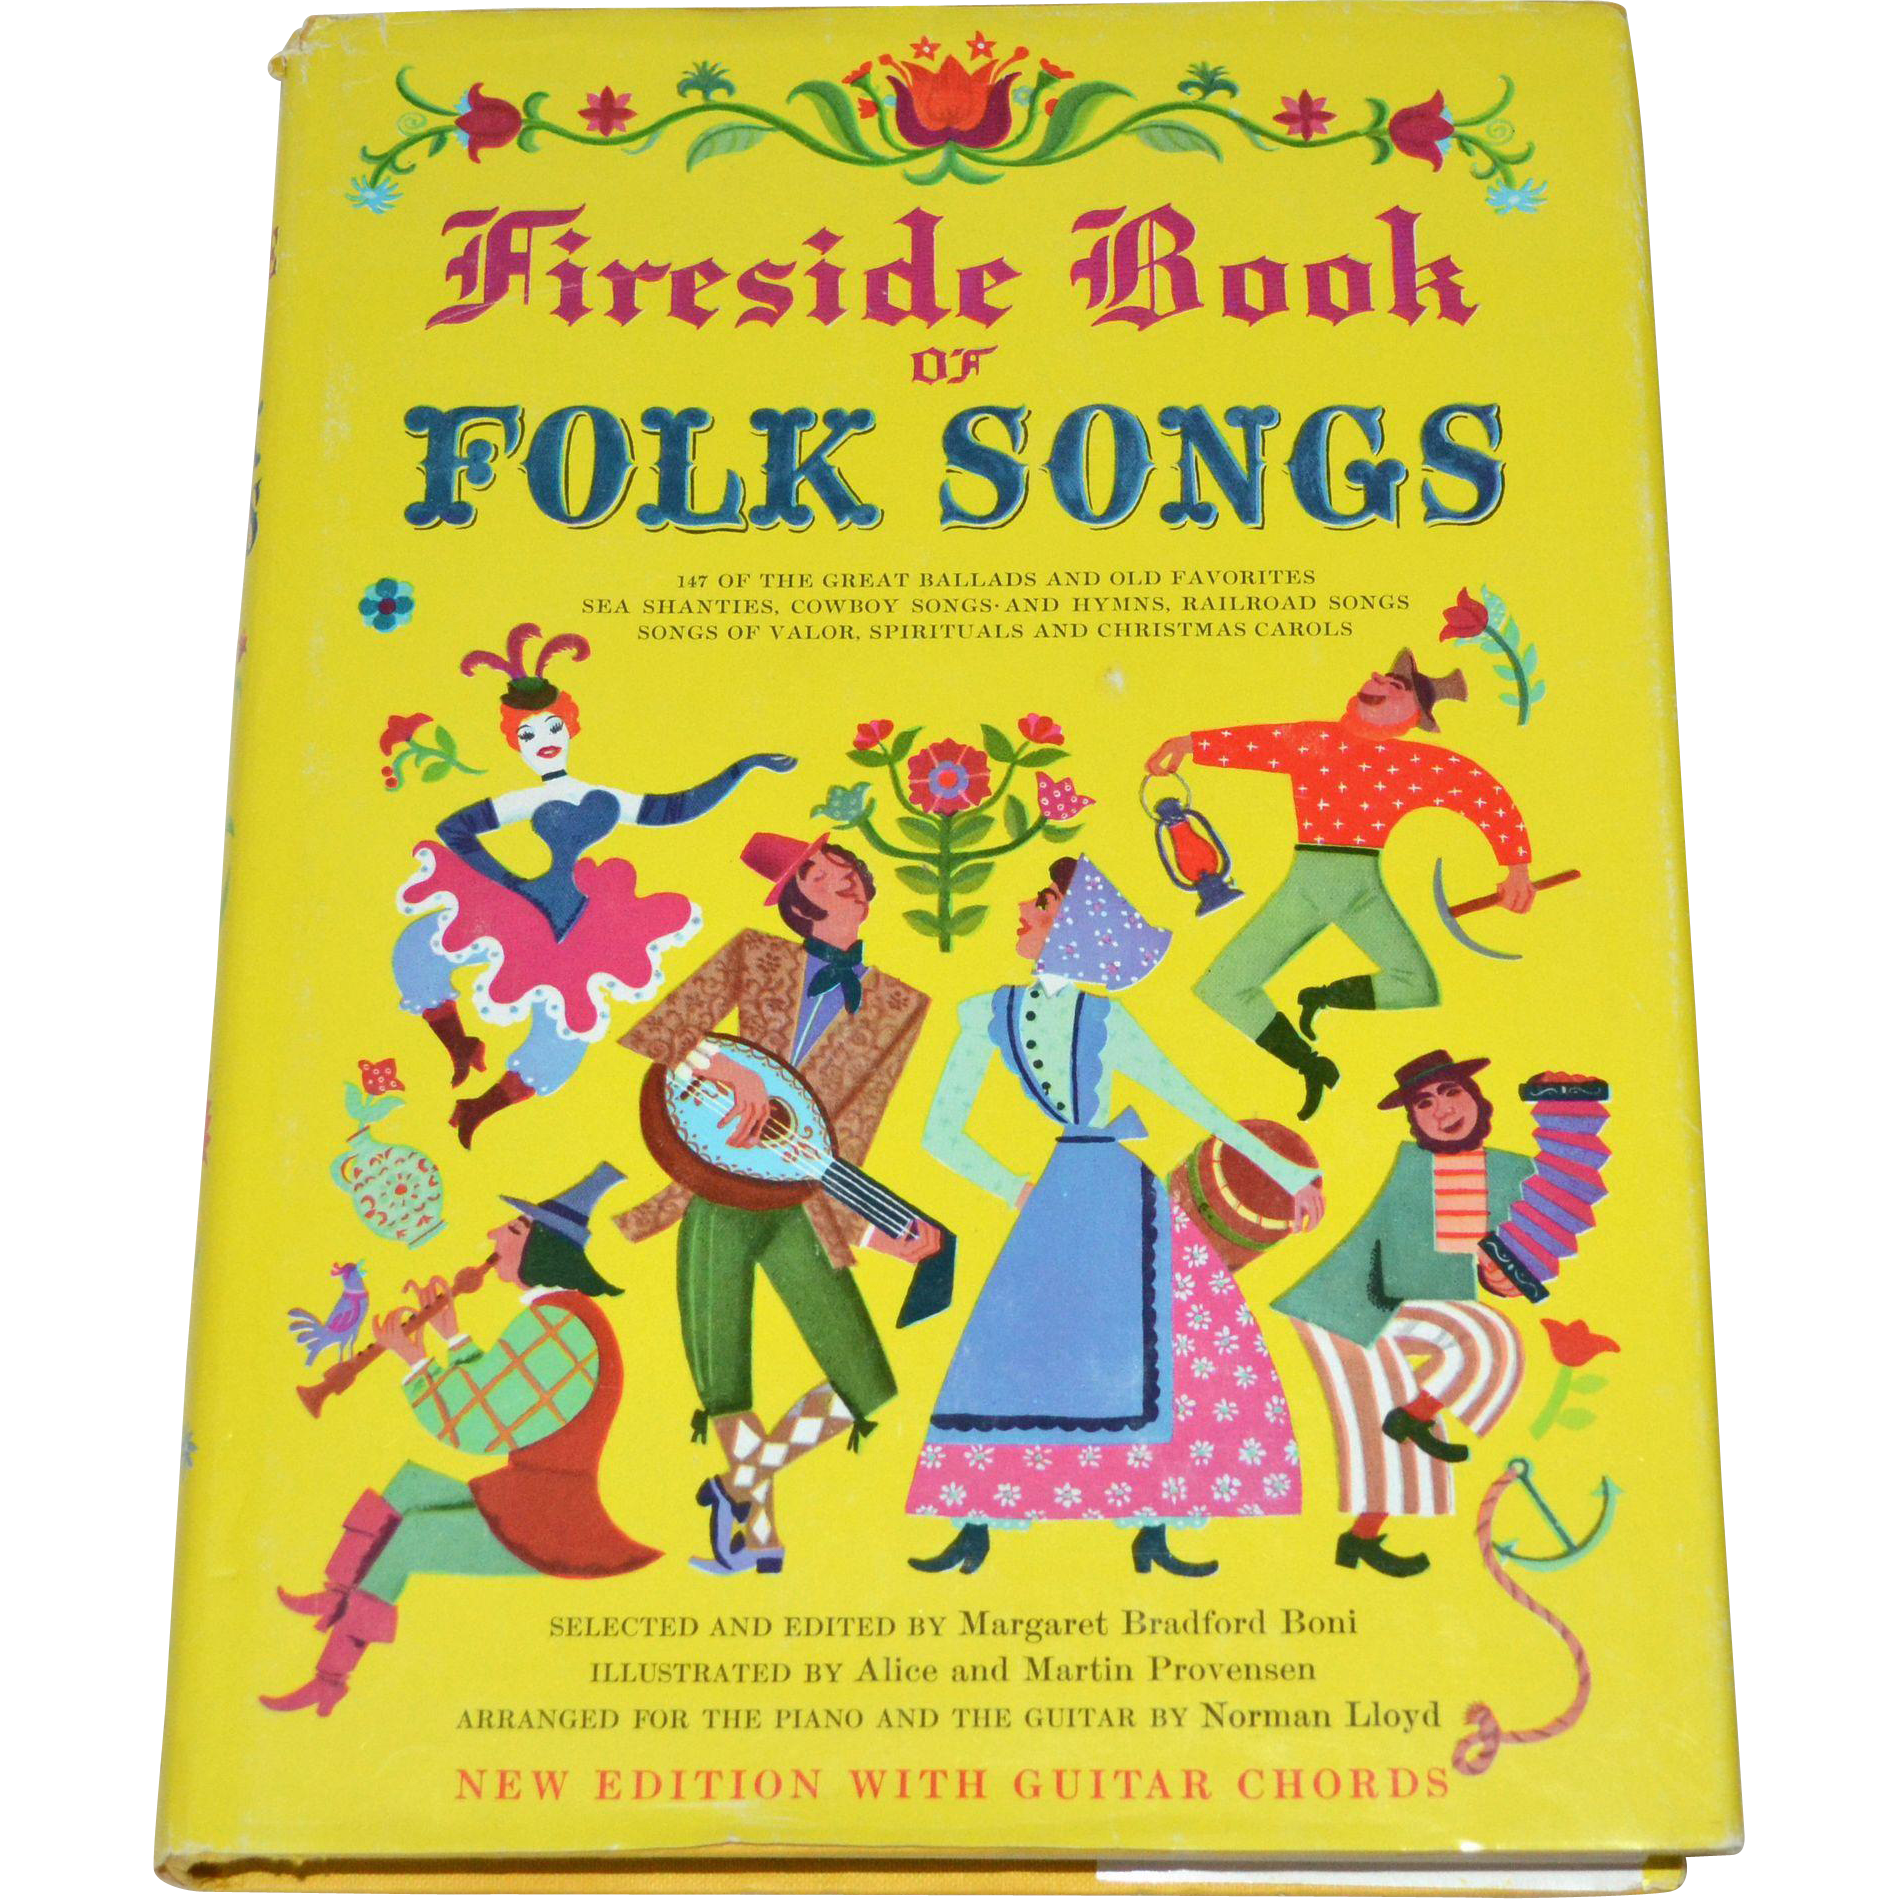 fireside book of folk songs hardcover songbook w dj guitar chords from kitschandcouture on ruby. Black Bedroom Furniture Sets. Home Design Ideas